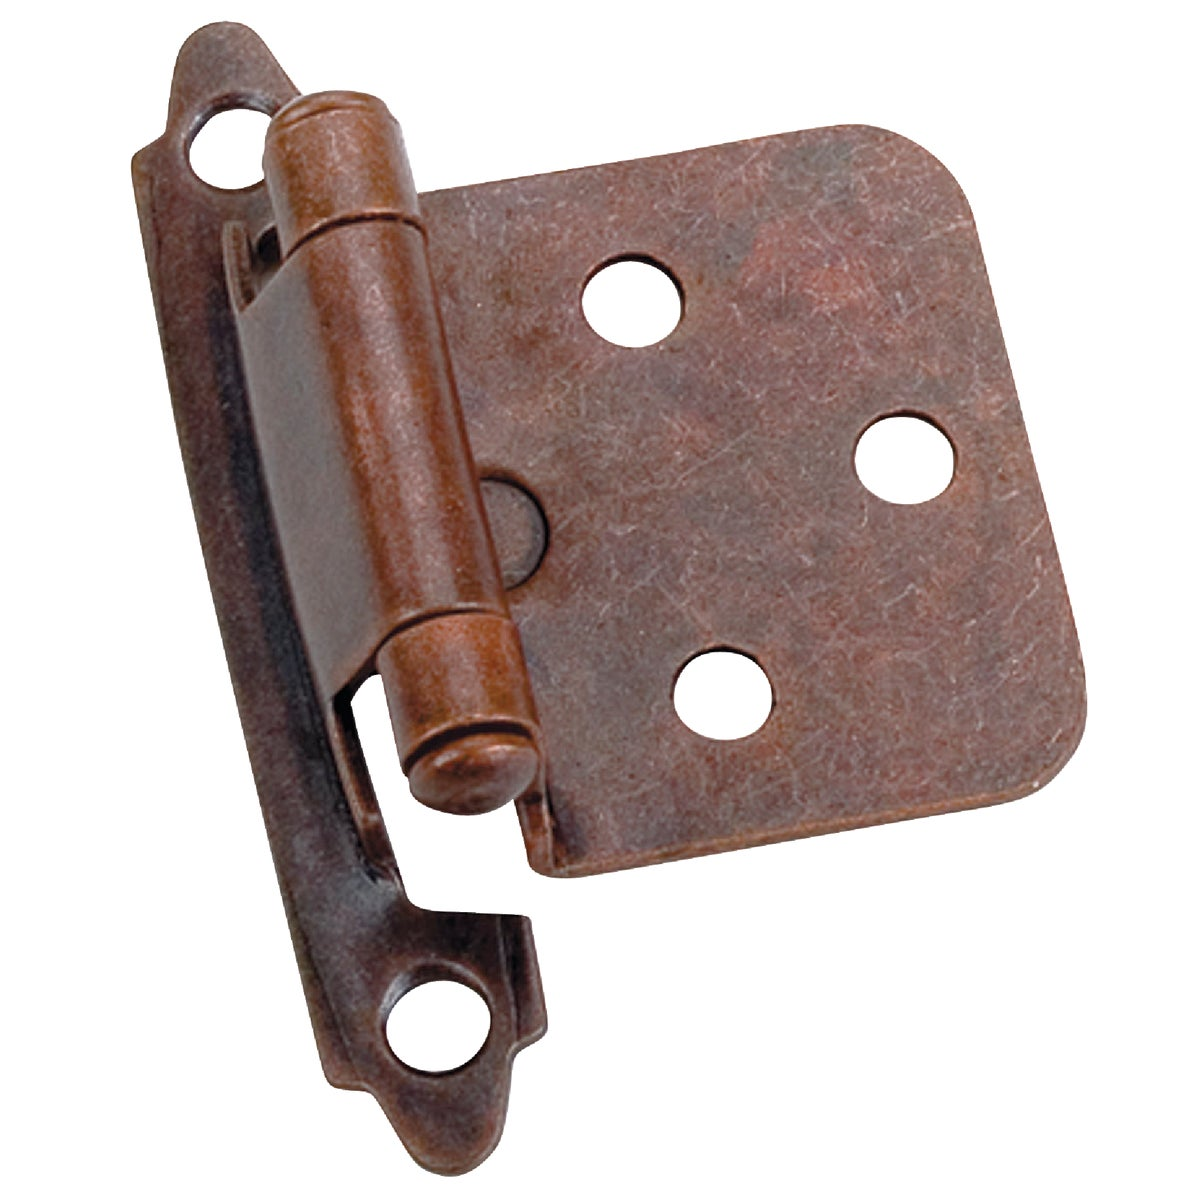 BRONZE VENETIAN HINGE - 28777 by Laurey Co